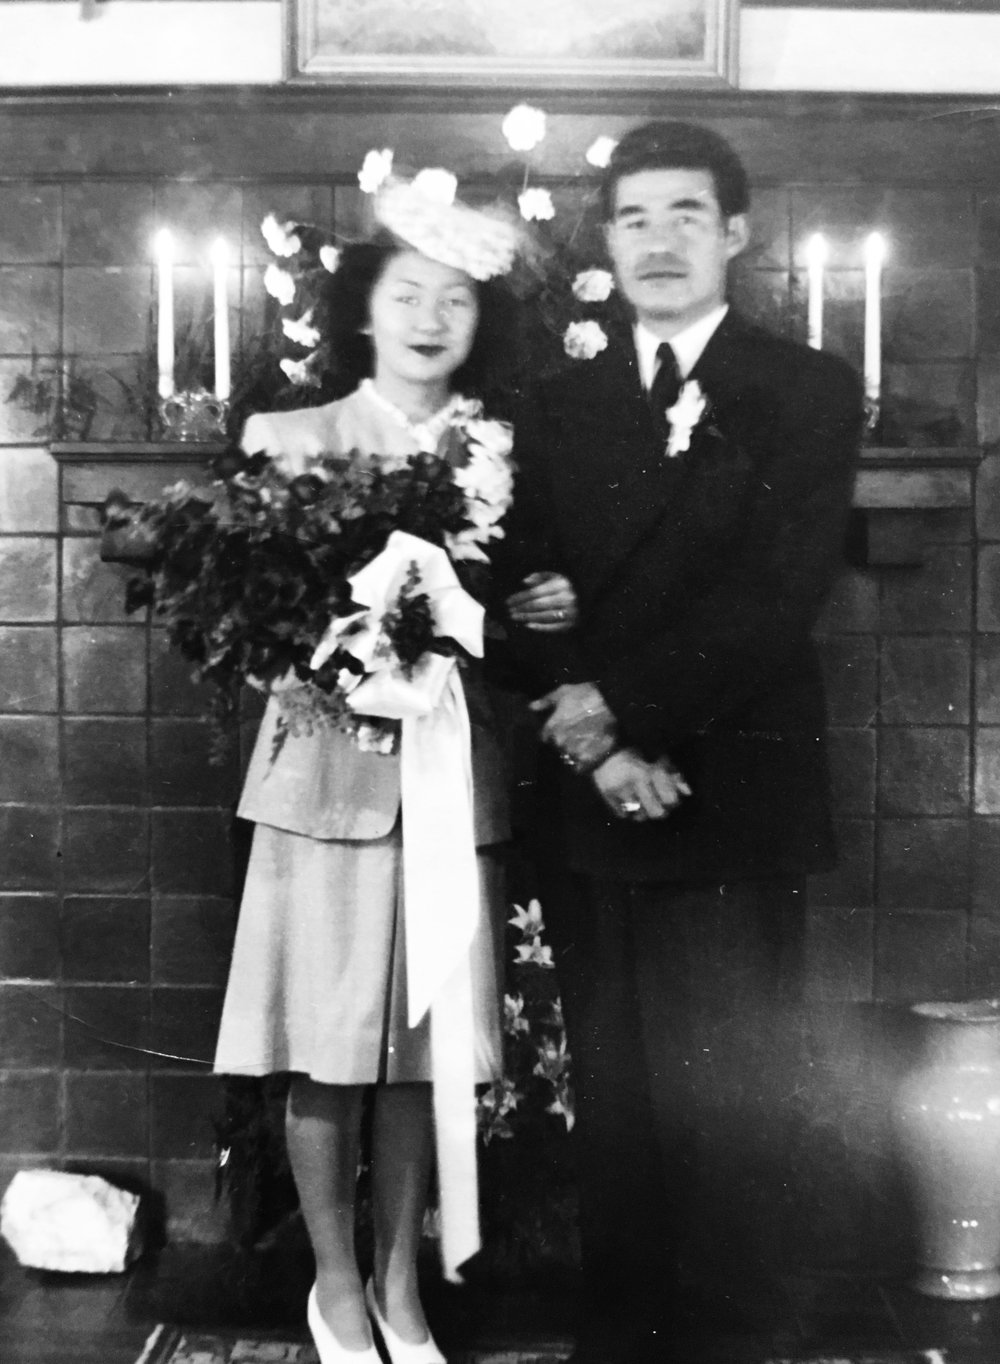 Mary and Shi on their wedding day